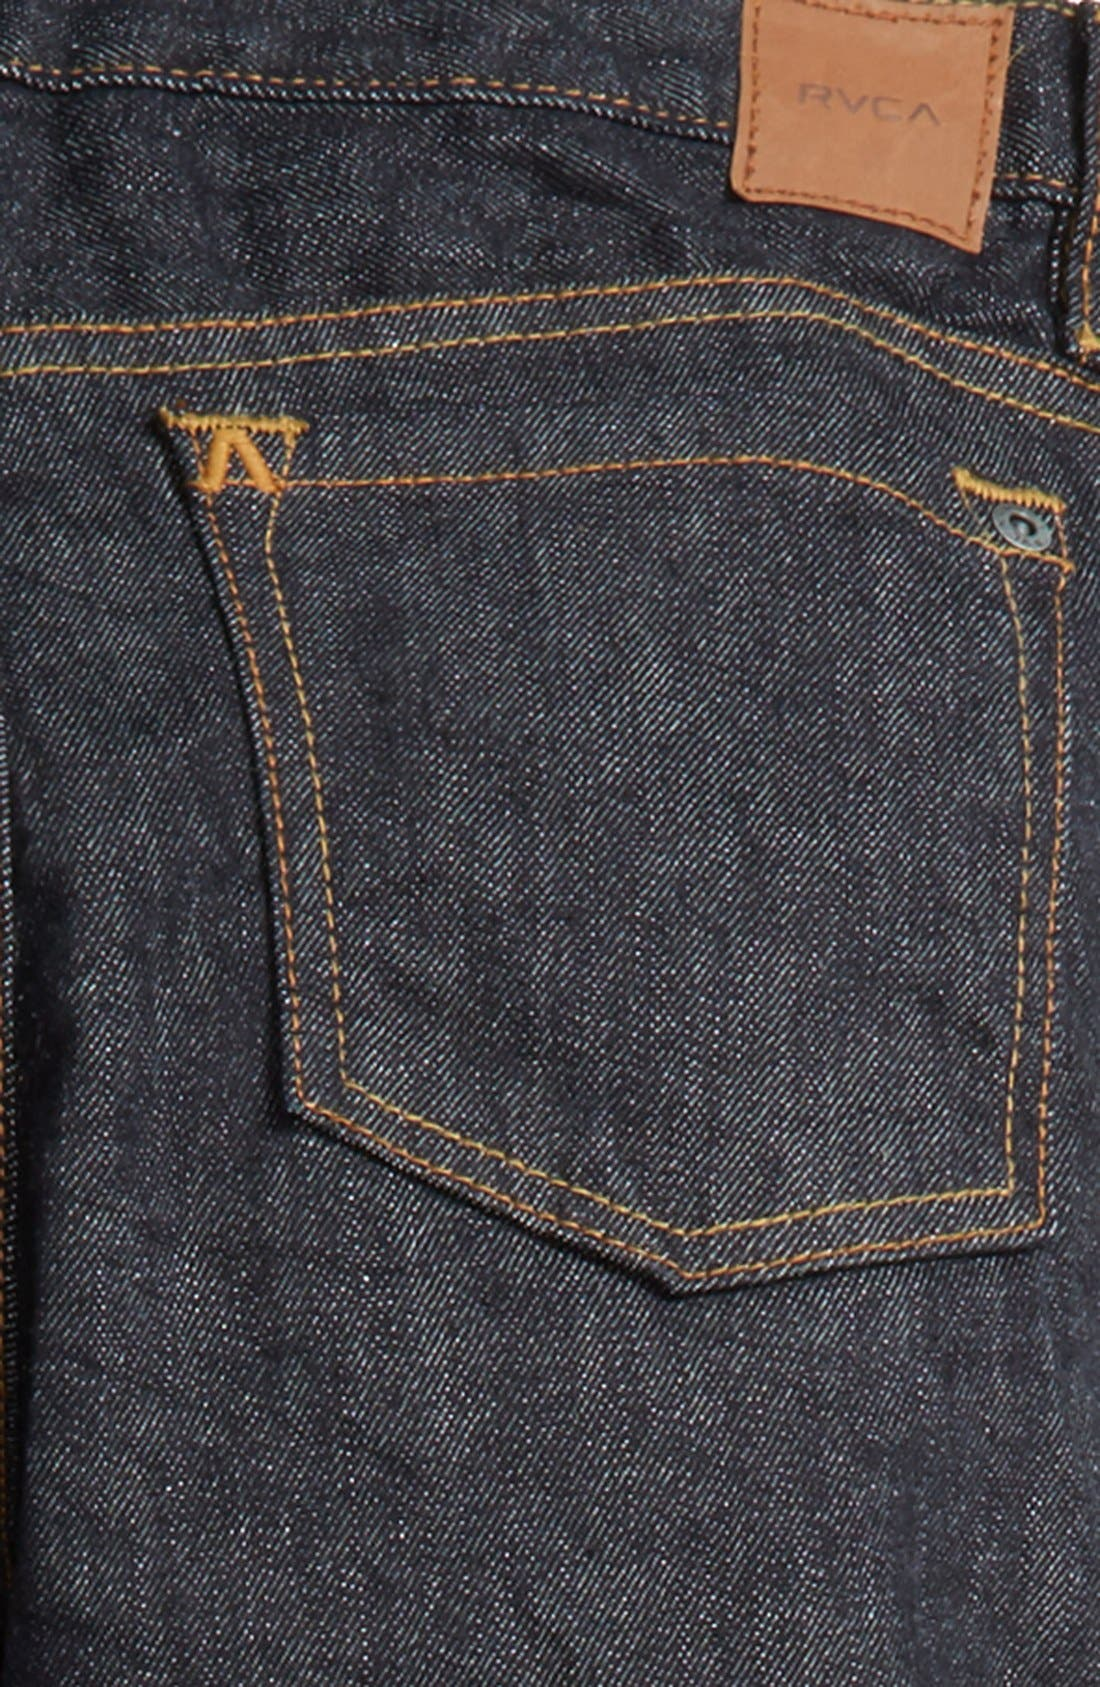 'Daggers' Slim Fit Jeans,                             Alternate thumbnail 6, color,